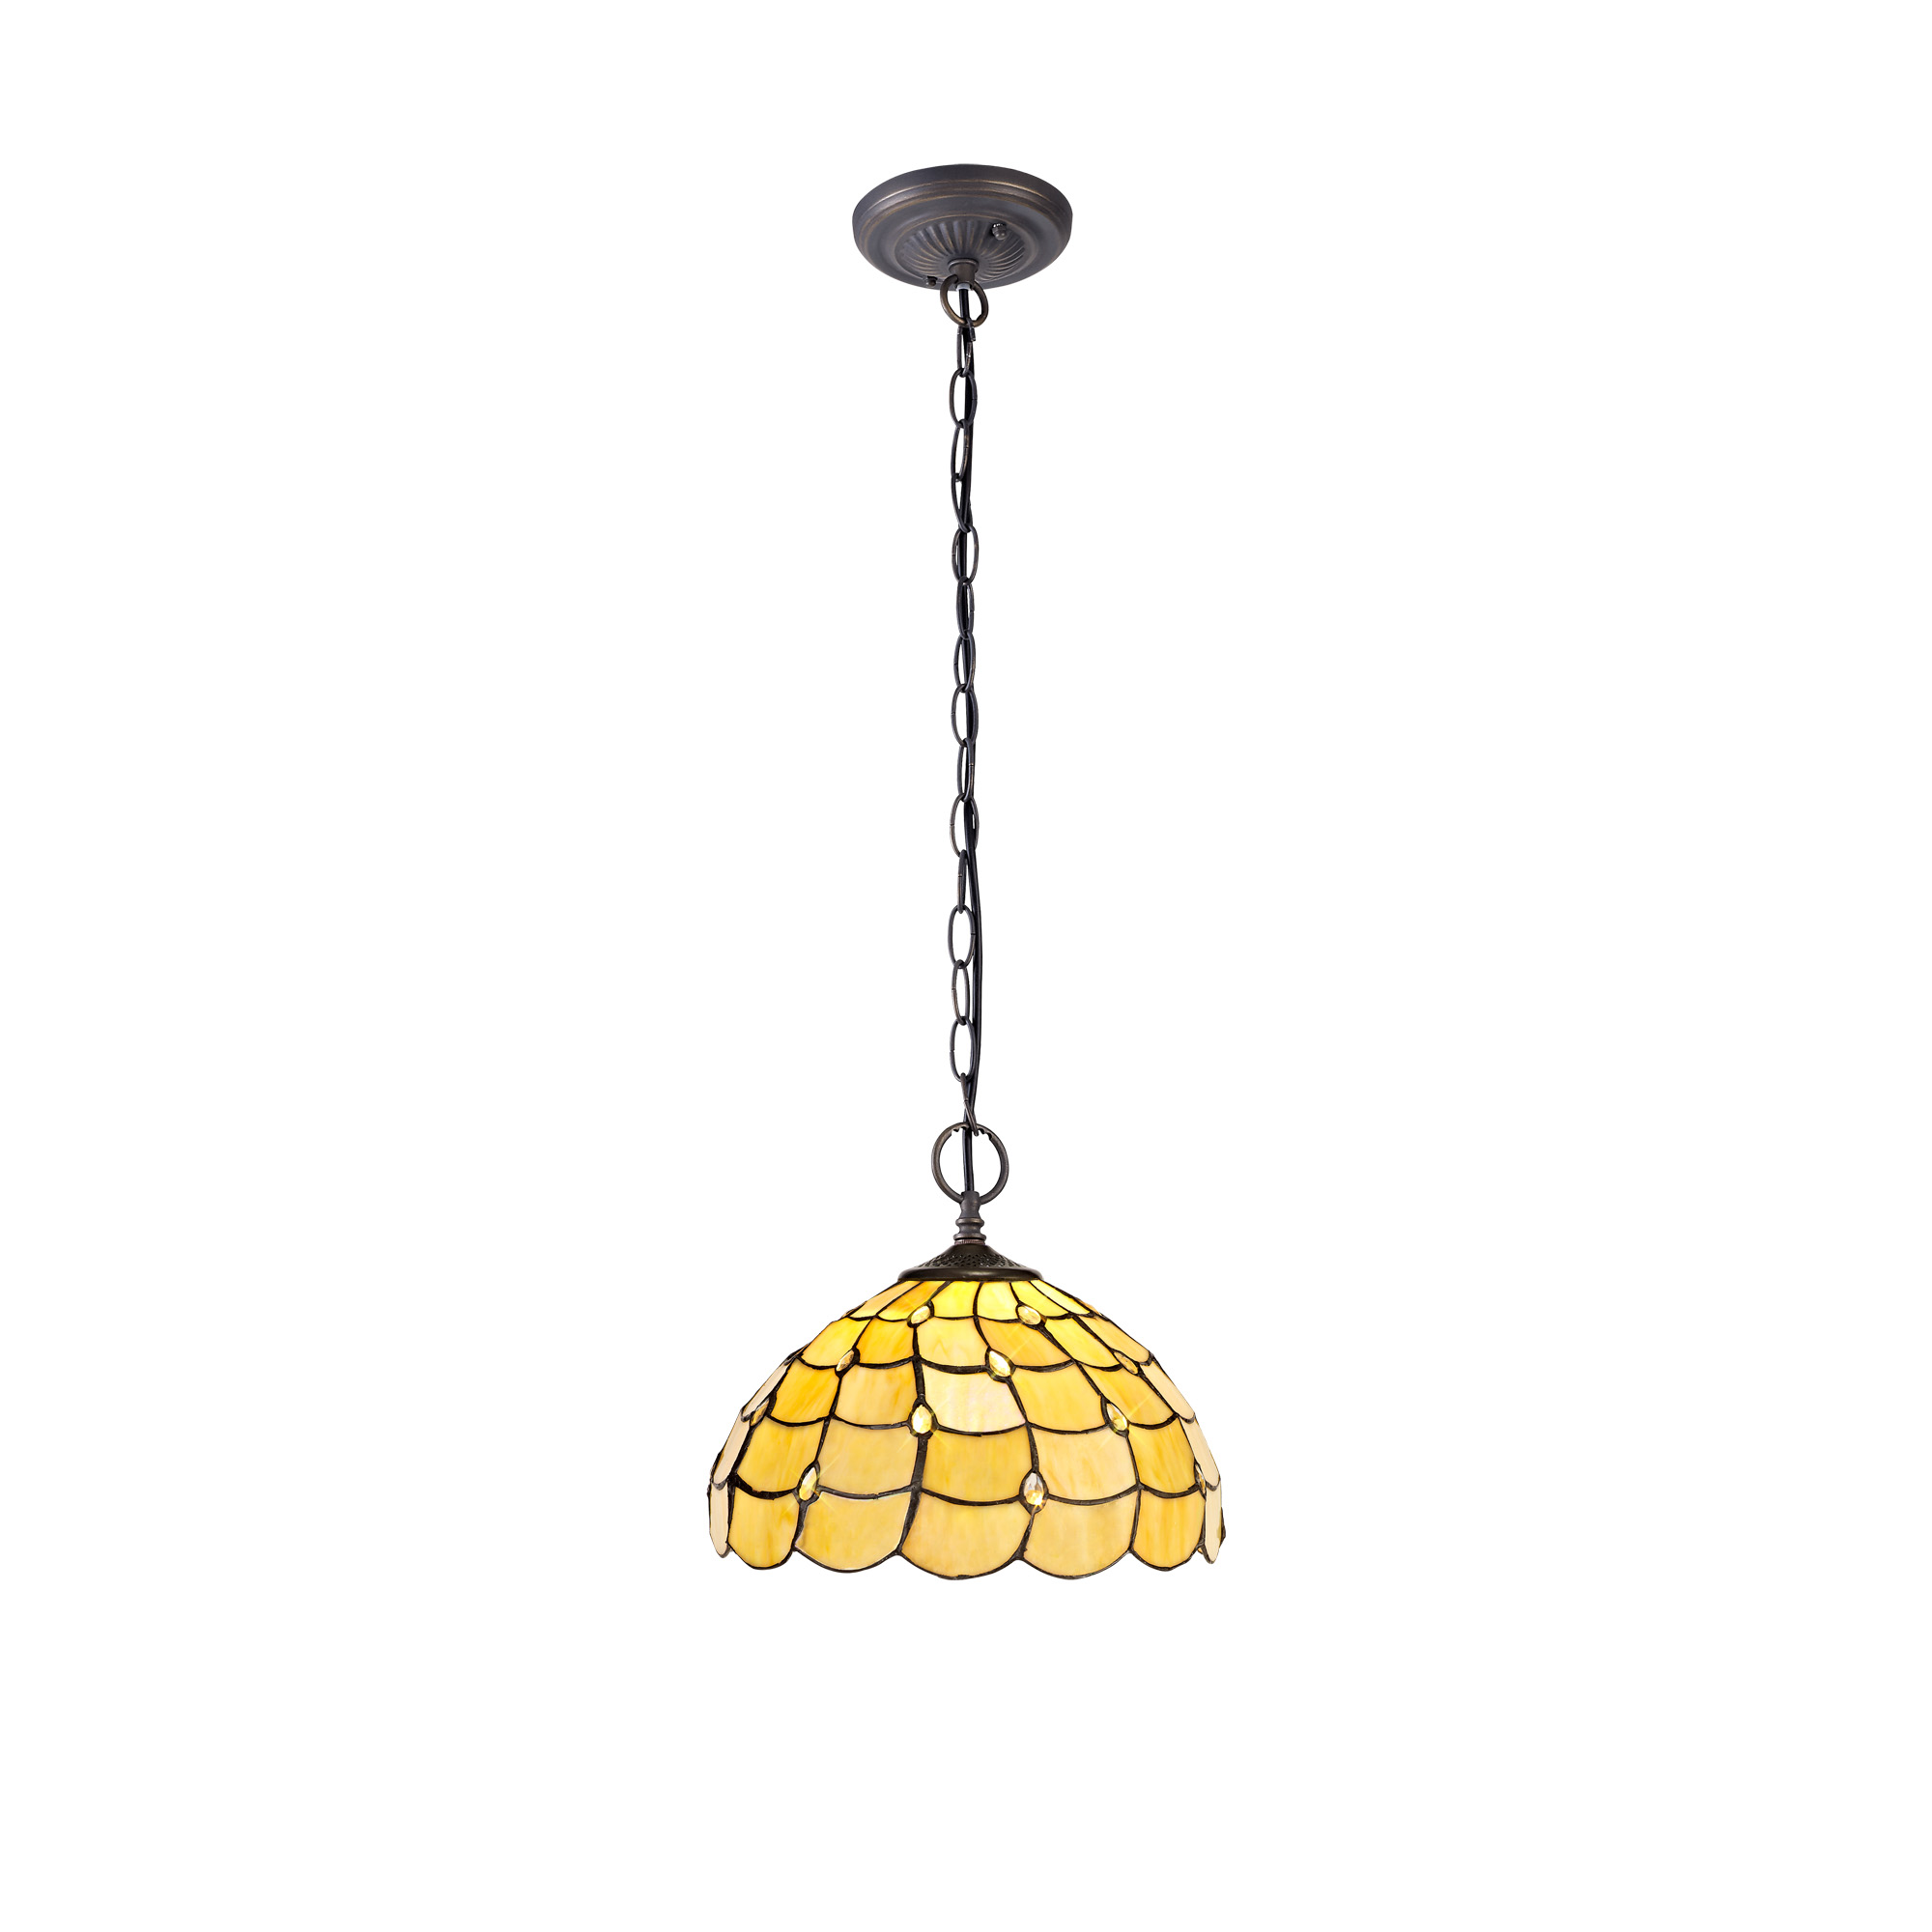 2 Light Downlighter Pendant E27 With 30cm Tiffany Shade, Beige/Clear Crystal/Aged Antique Brass